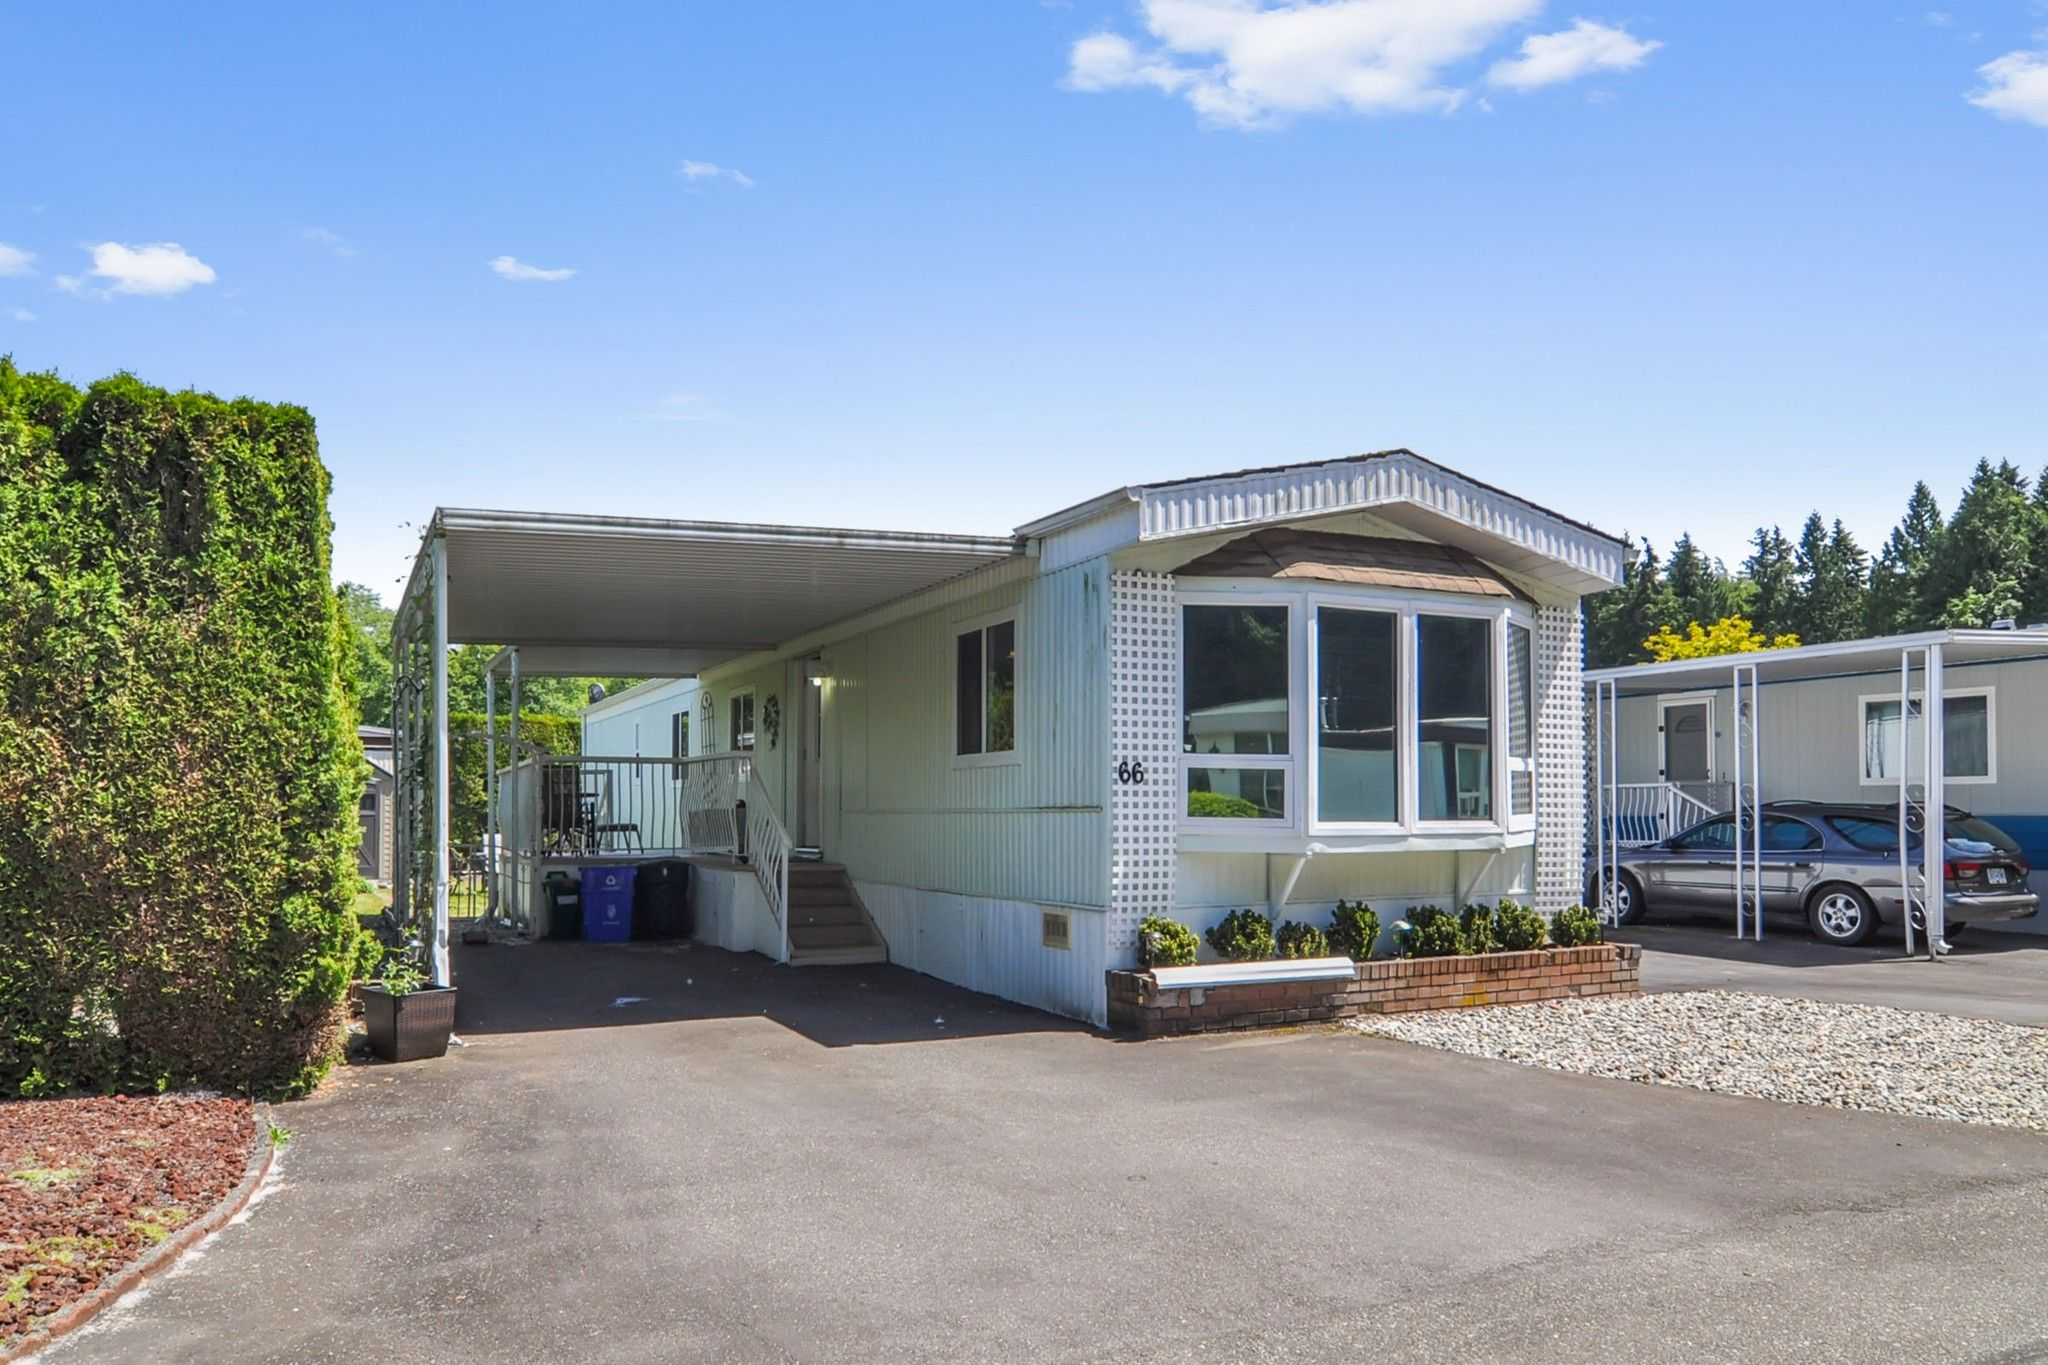 """Main Photo: 66 2270 196 Street in Langley: Brookswood Langley Manufactured Home for sale in """"Pineridge Park"""" : MLS®# R2459842"""